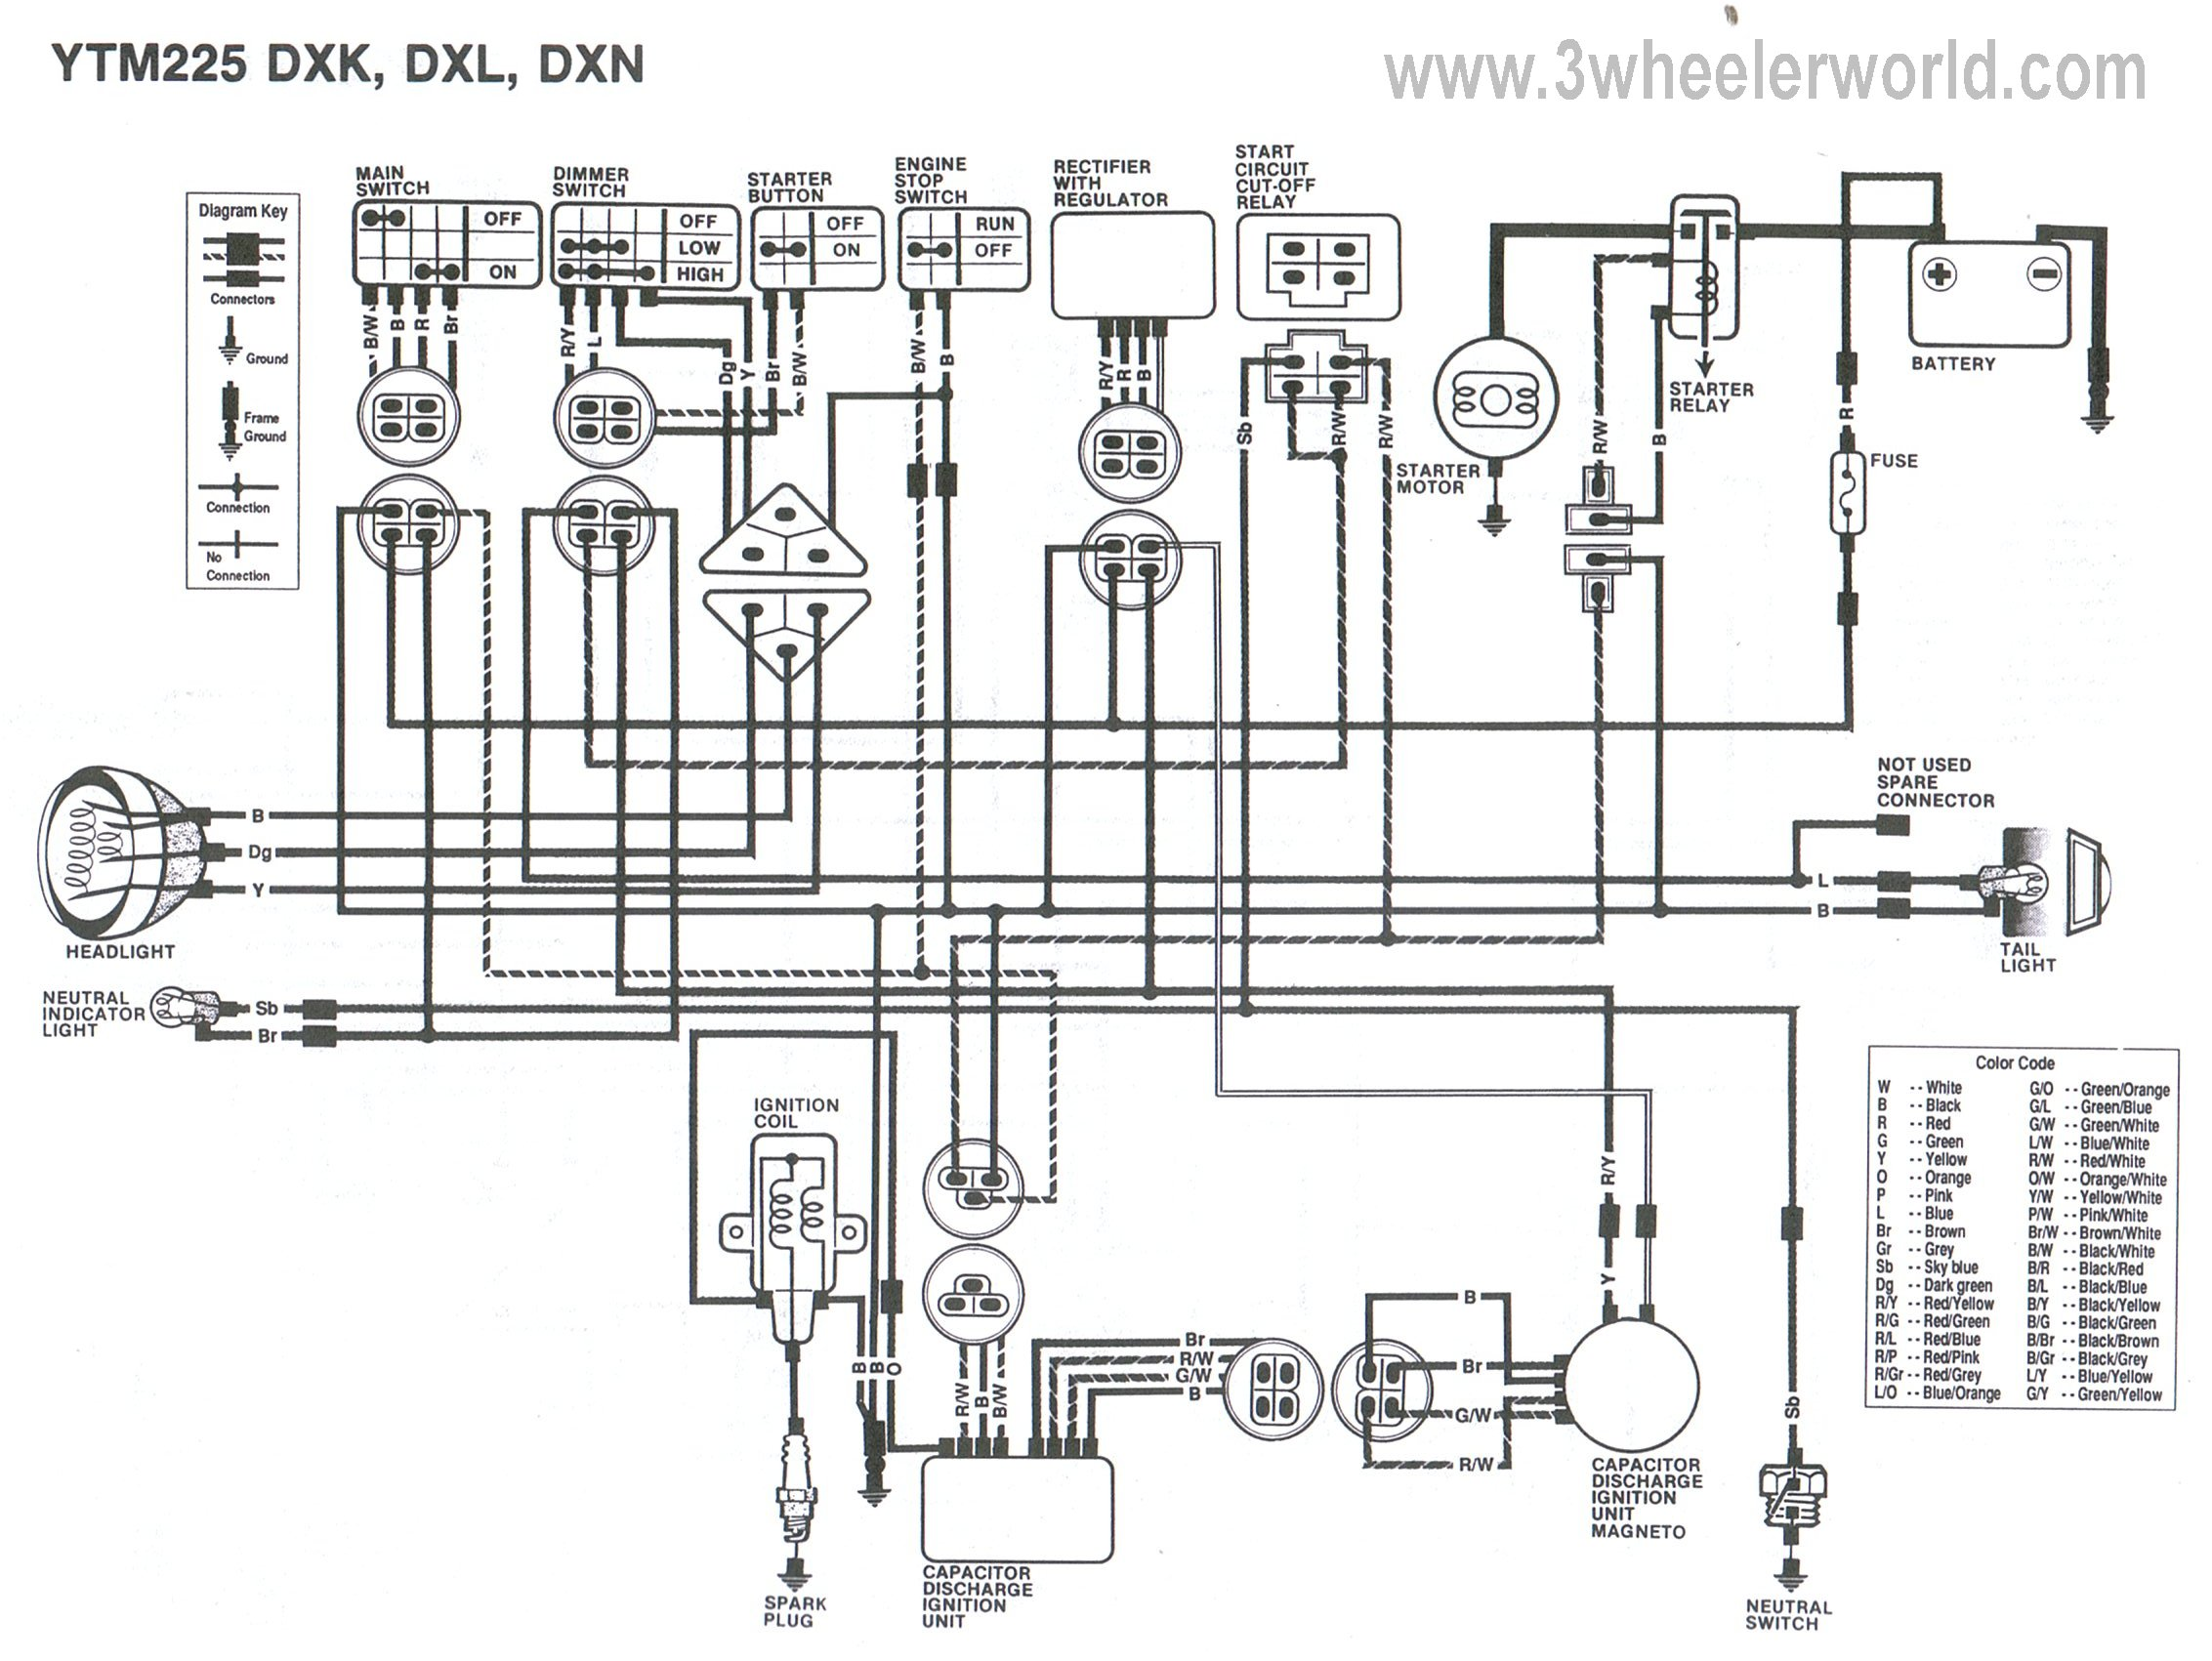 YTM225DXKDXLDXN 3 wheeler world tech help yamaha wiring diagrams yamaha moto 4 250 wiring diagrams at bayanpartner.co